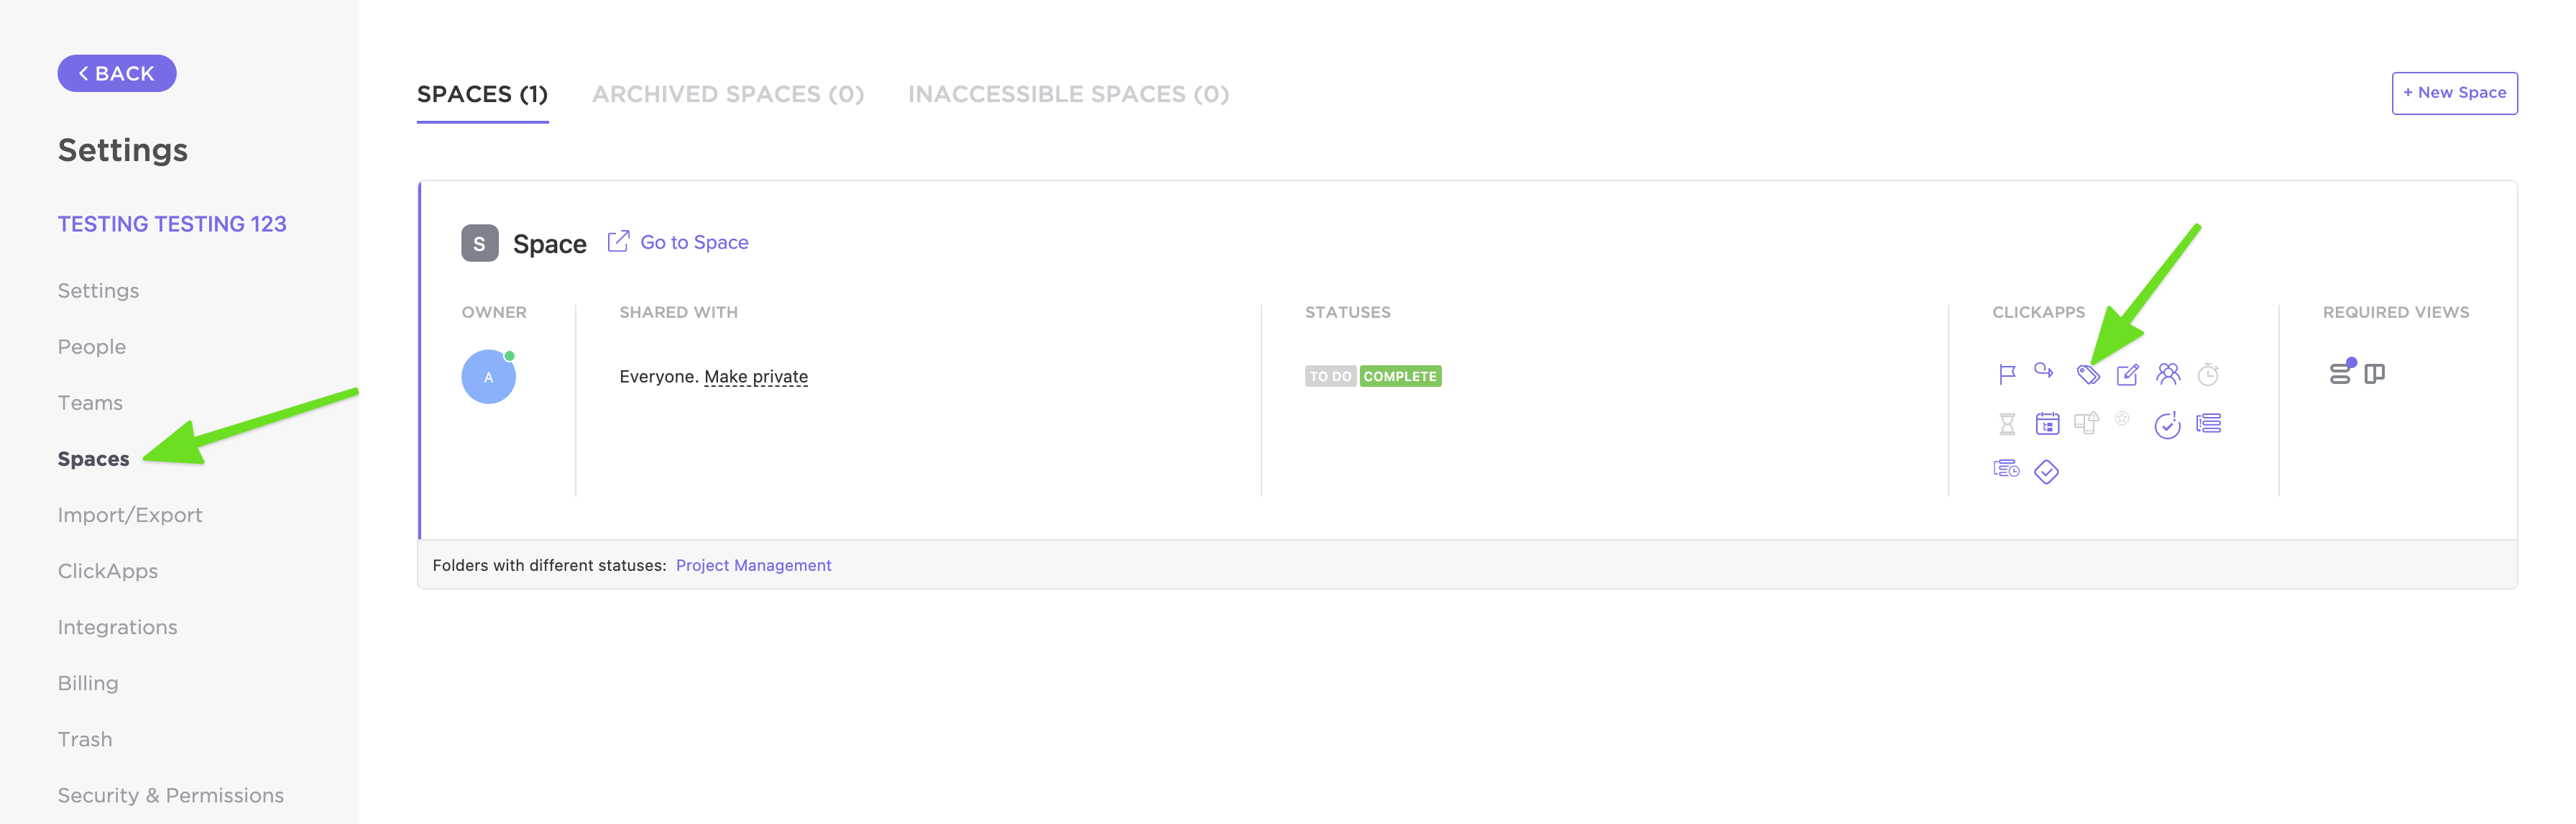 where to toggle on tags in spaces in settings